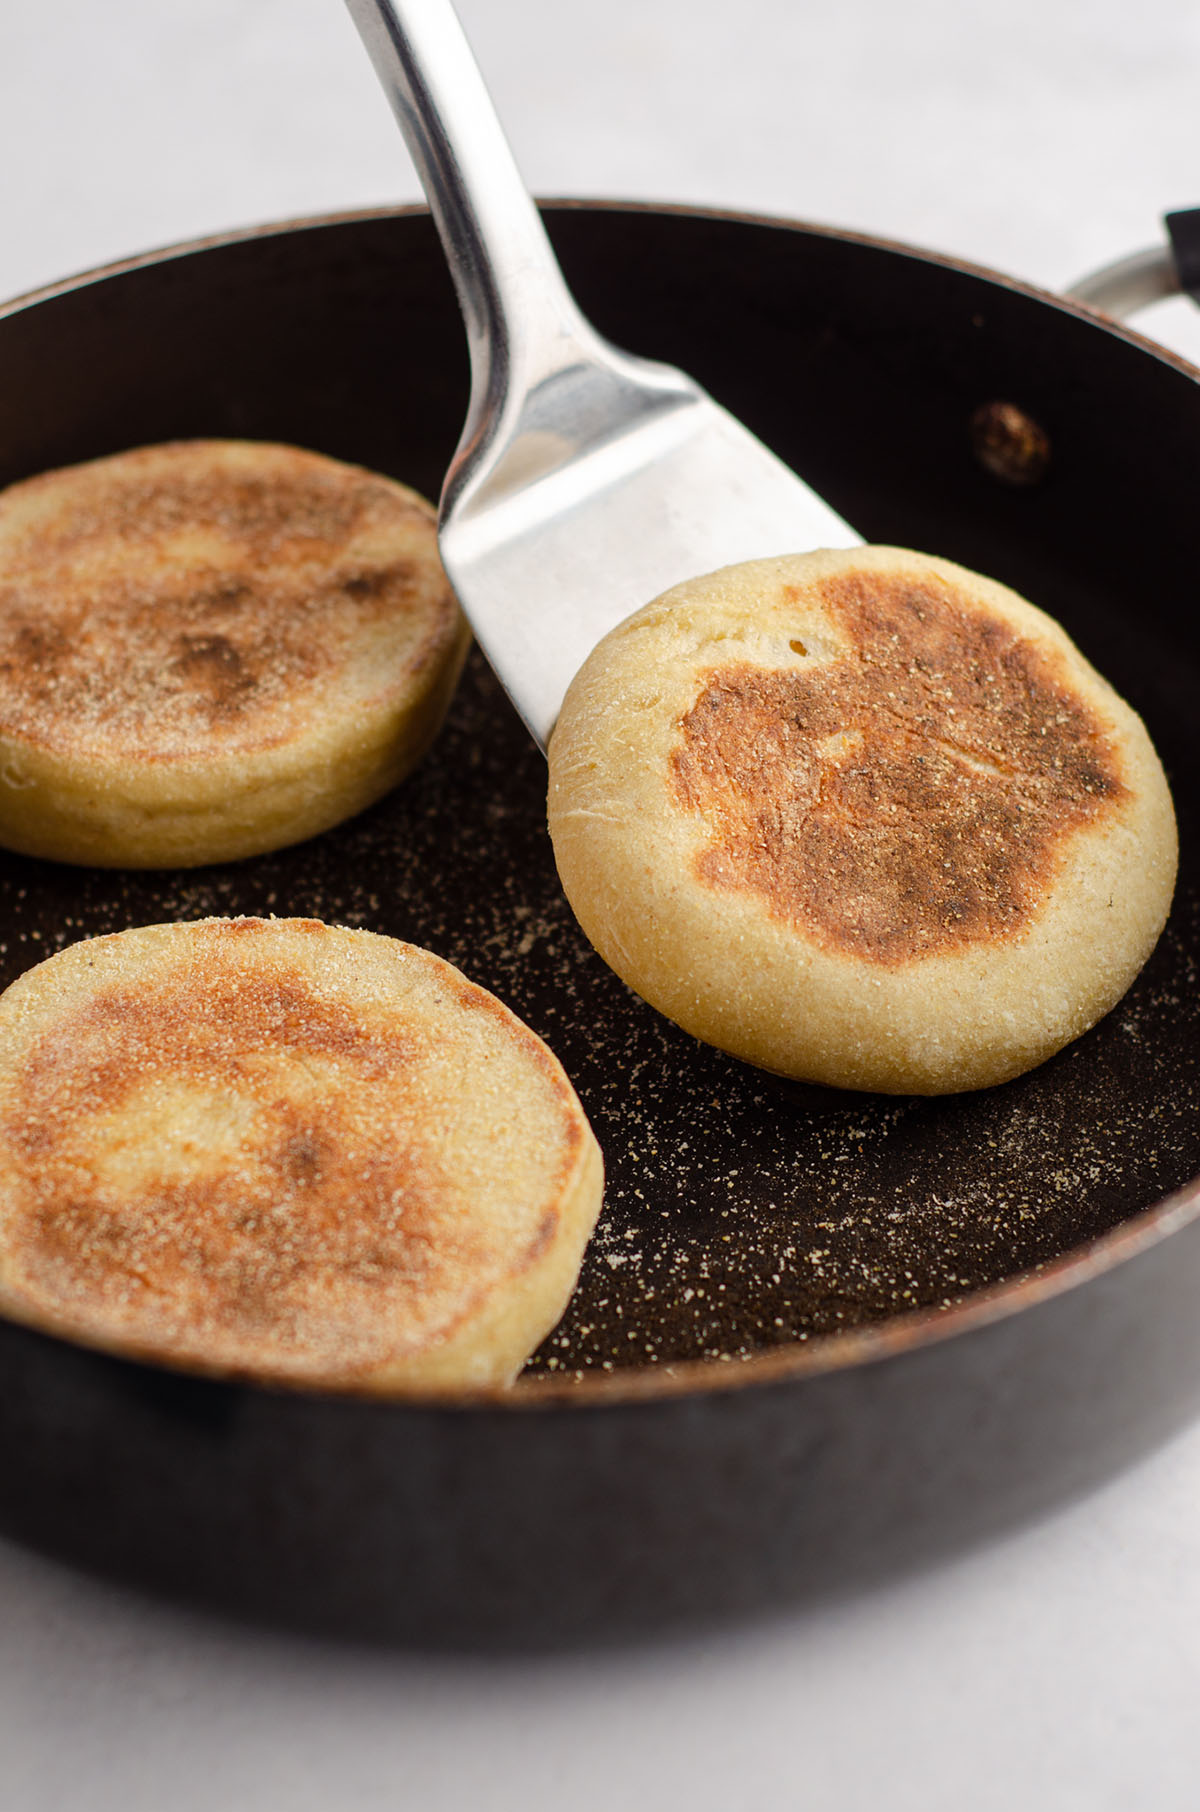 spatula flipping over a sourdough english muffin in a skillet